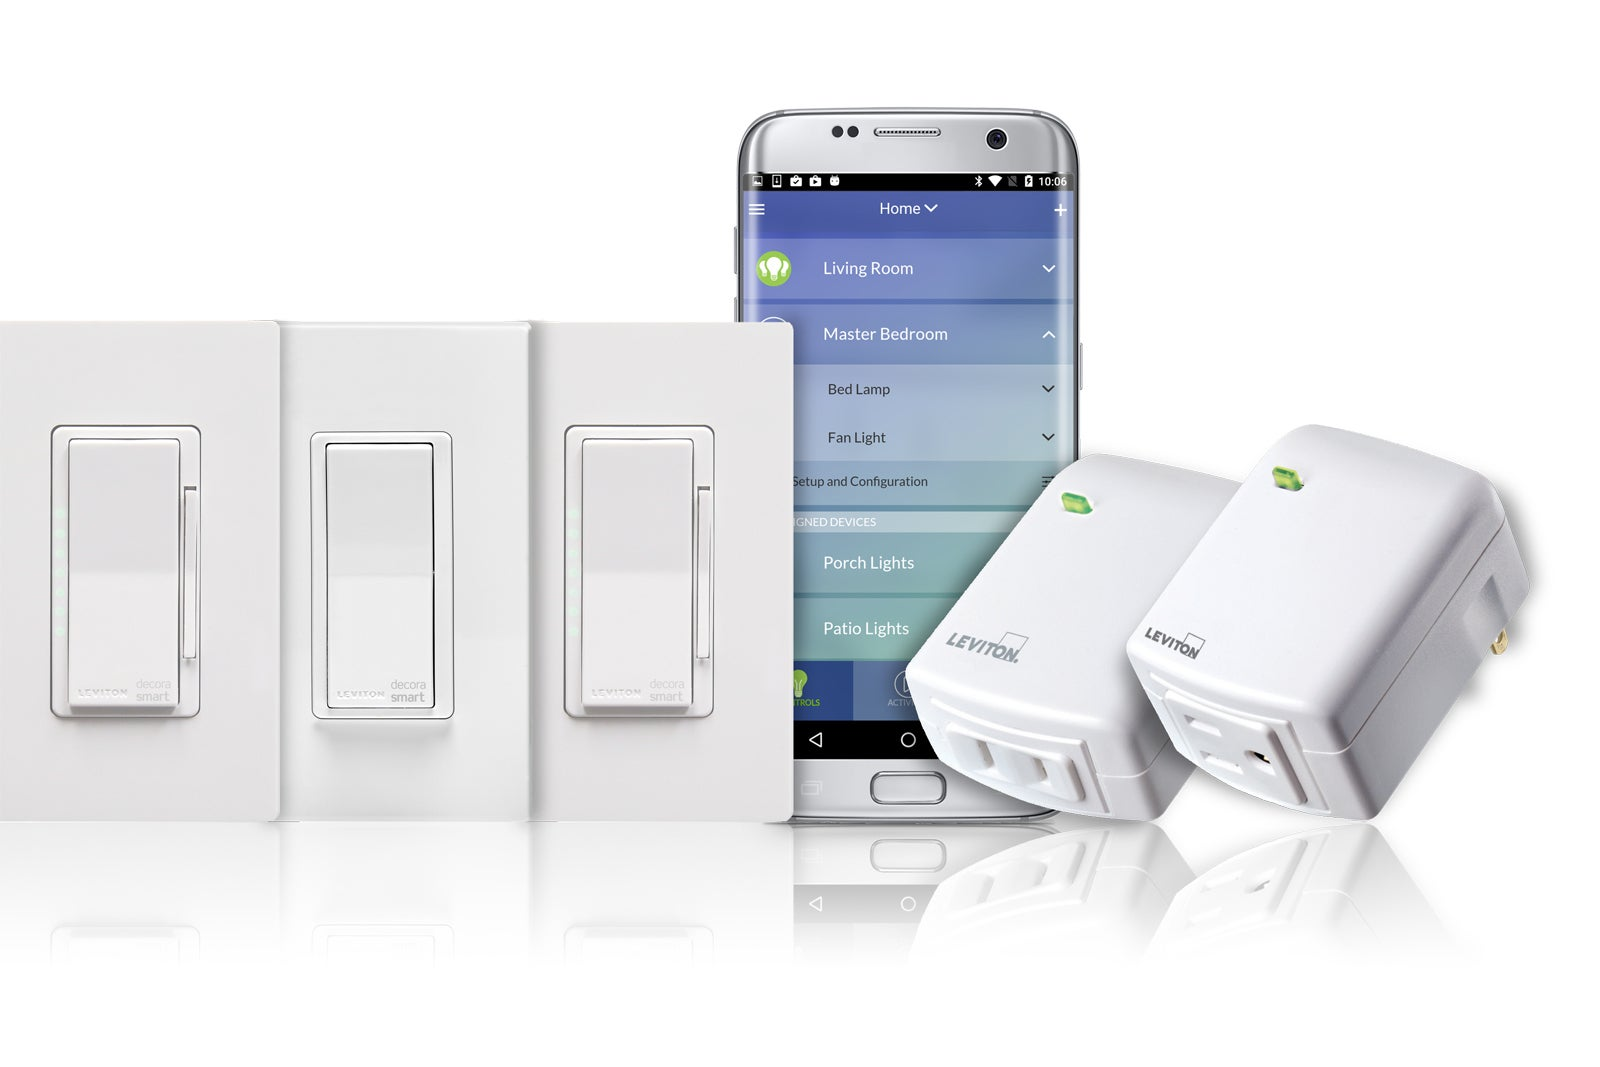 Leviton Decora Smart Wi Fi Review Recent Upgrades Pile On The Add A Light From Switched Receptacle Control Options Techhive